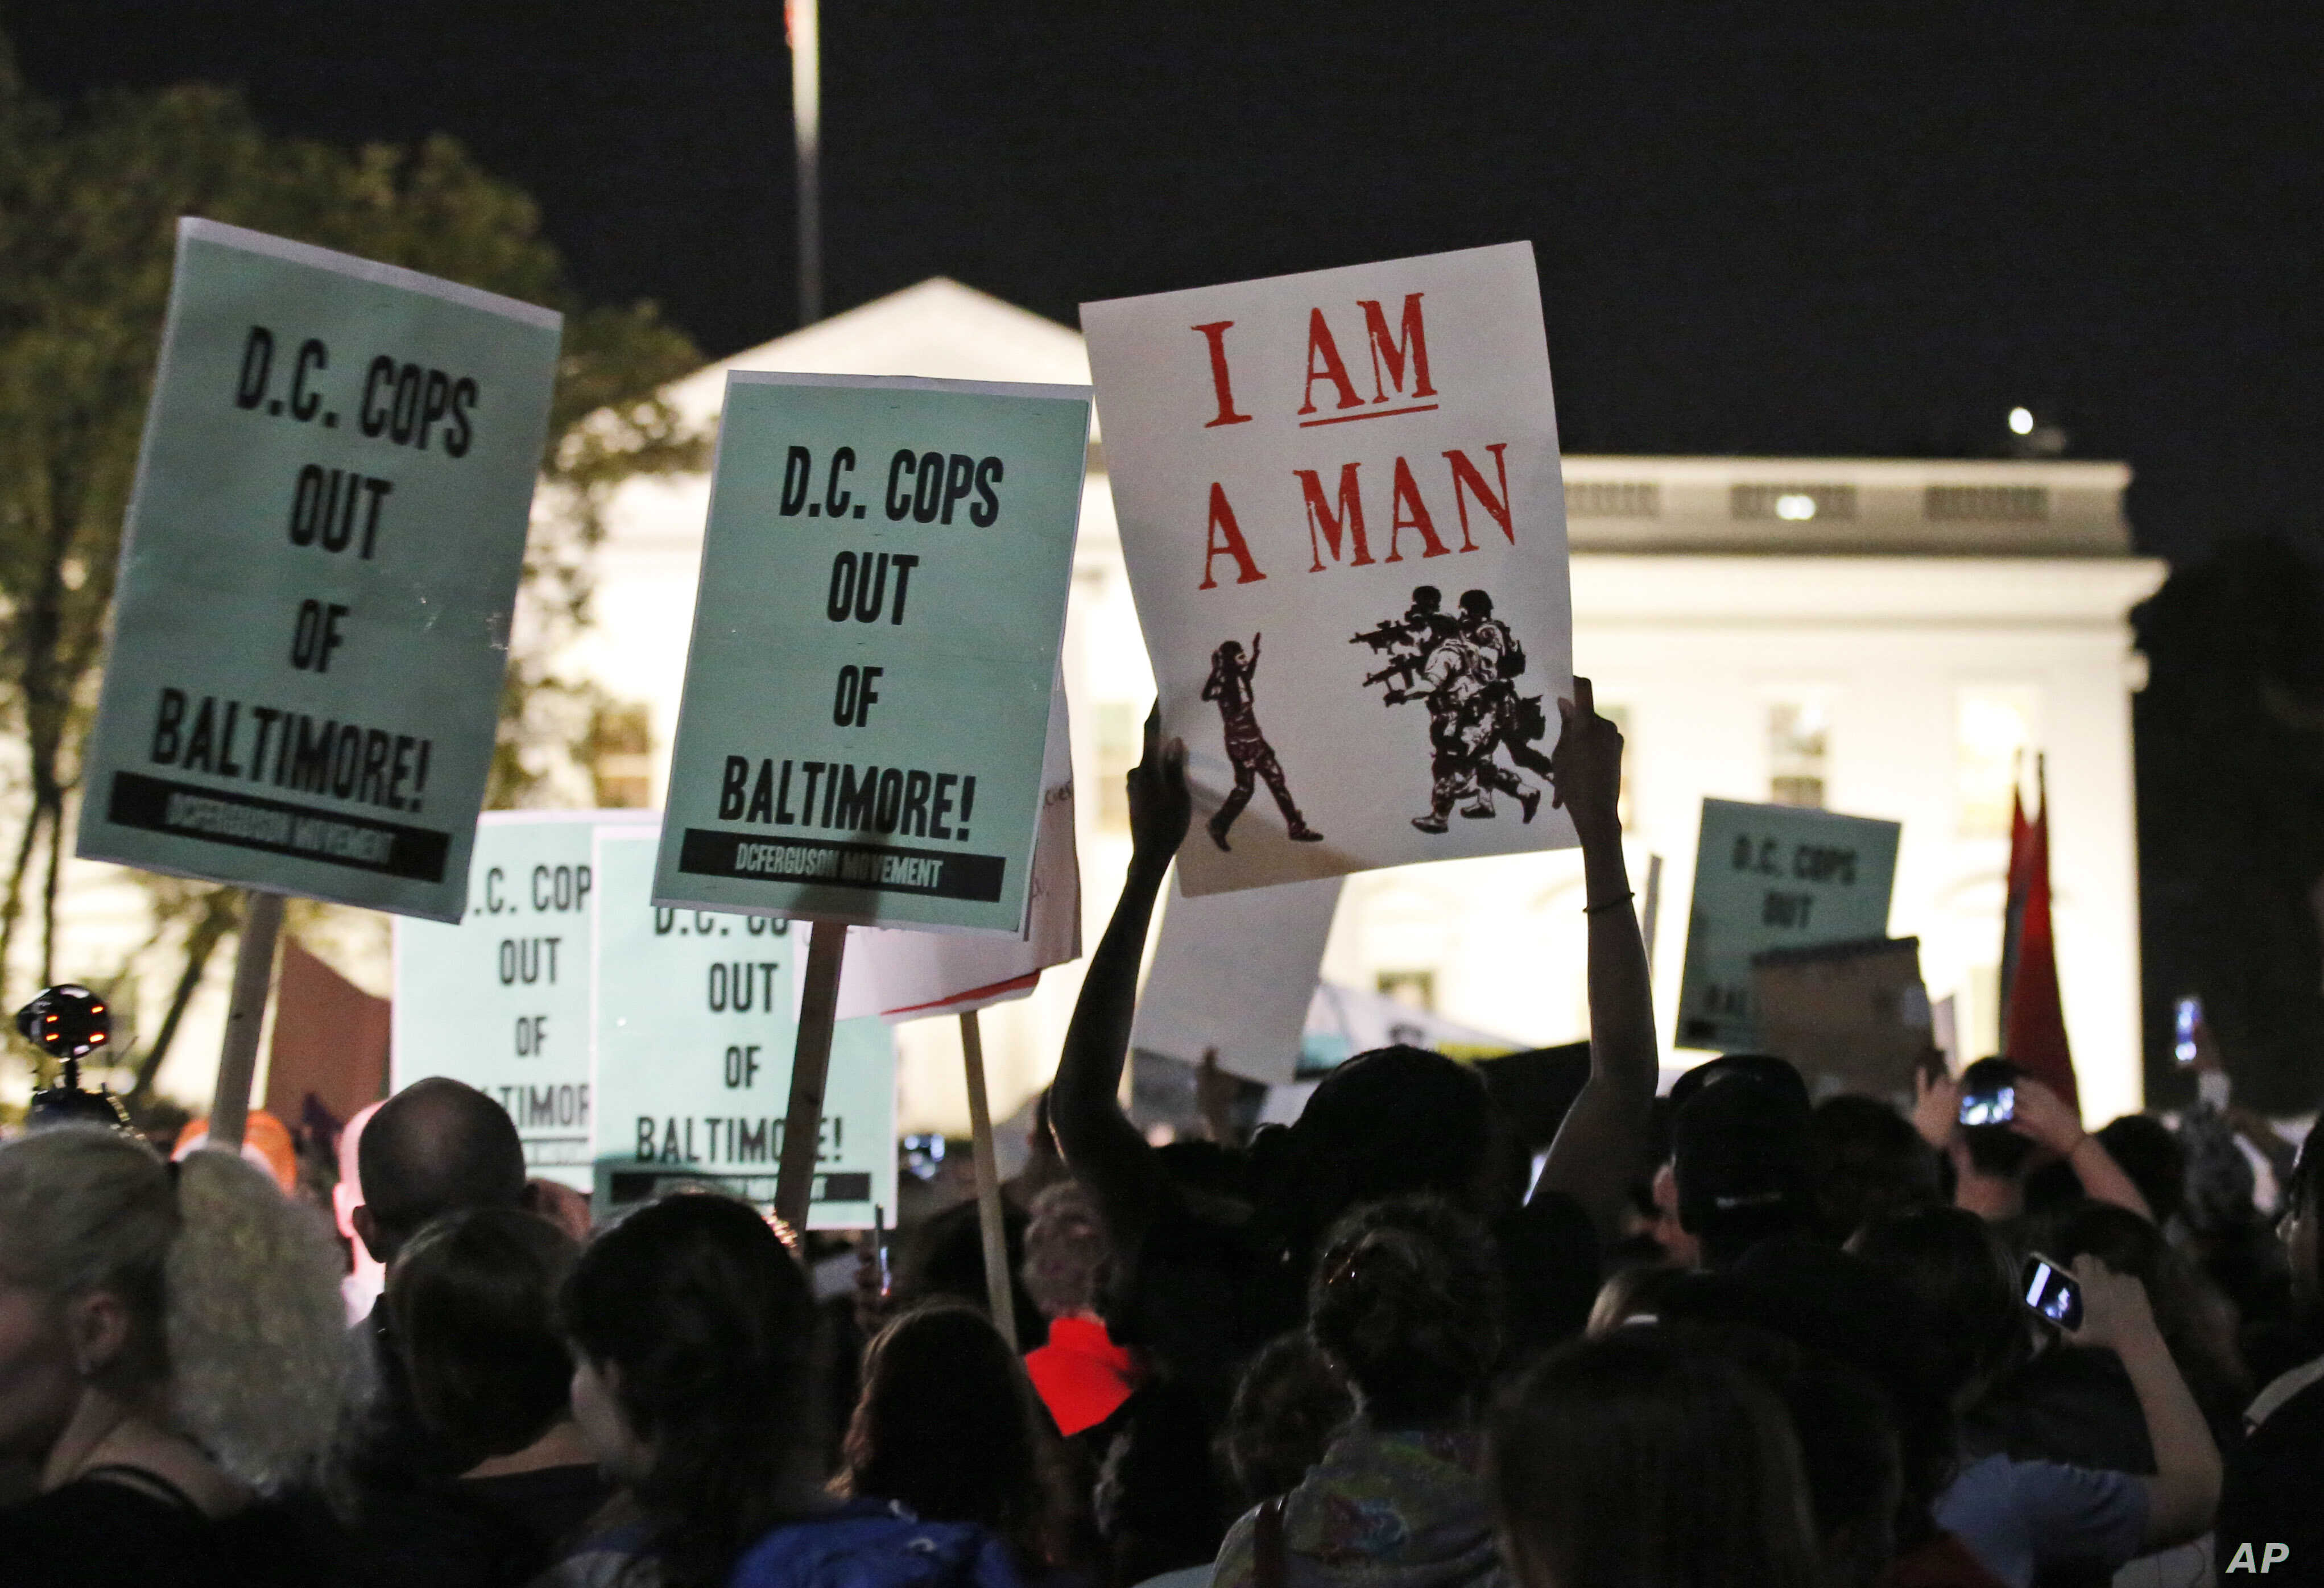 Demonstrators hold signs during a protest to support the rallies in Baltimore, in front of the White House in Washington, April 29, 2015.